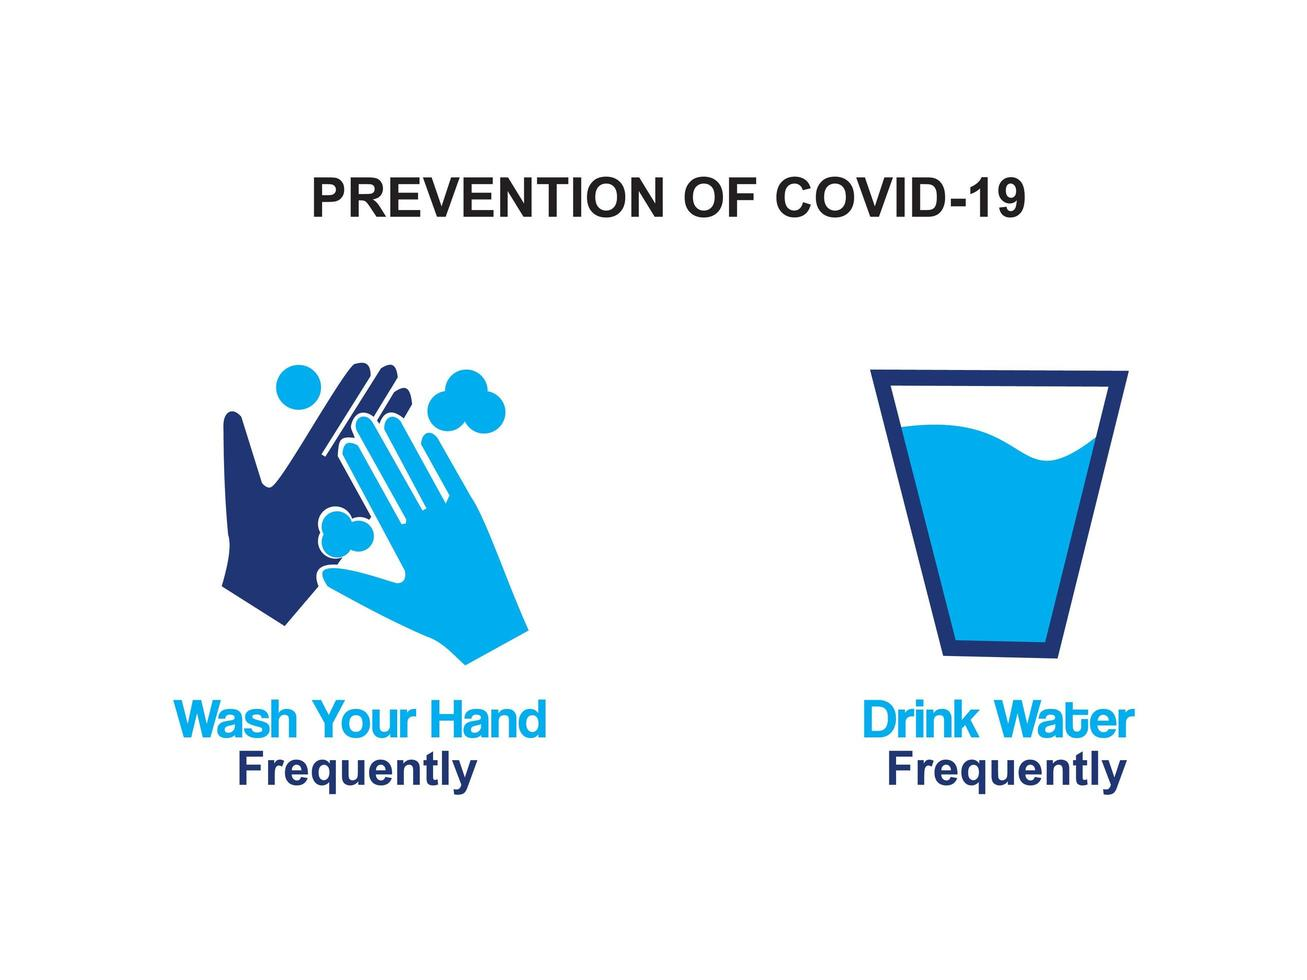 Prevention of Covid-19 steps poster vector